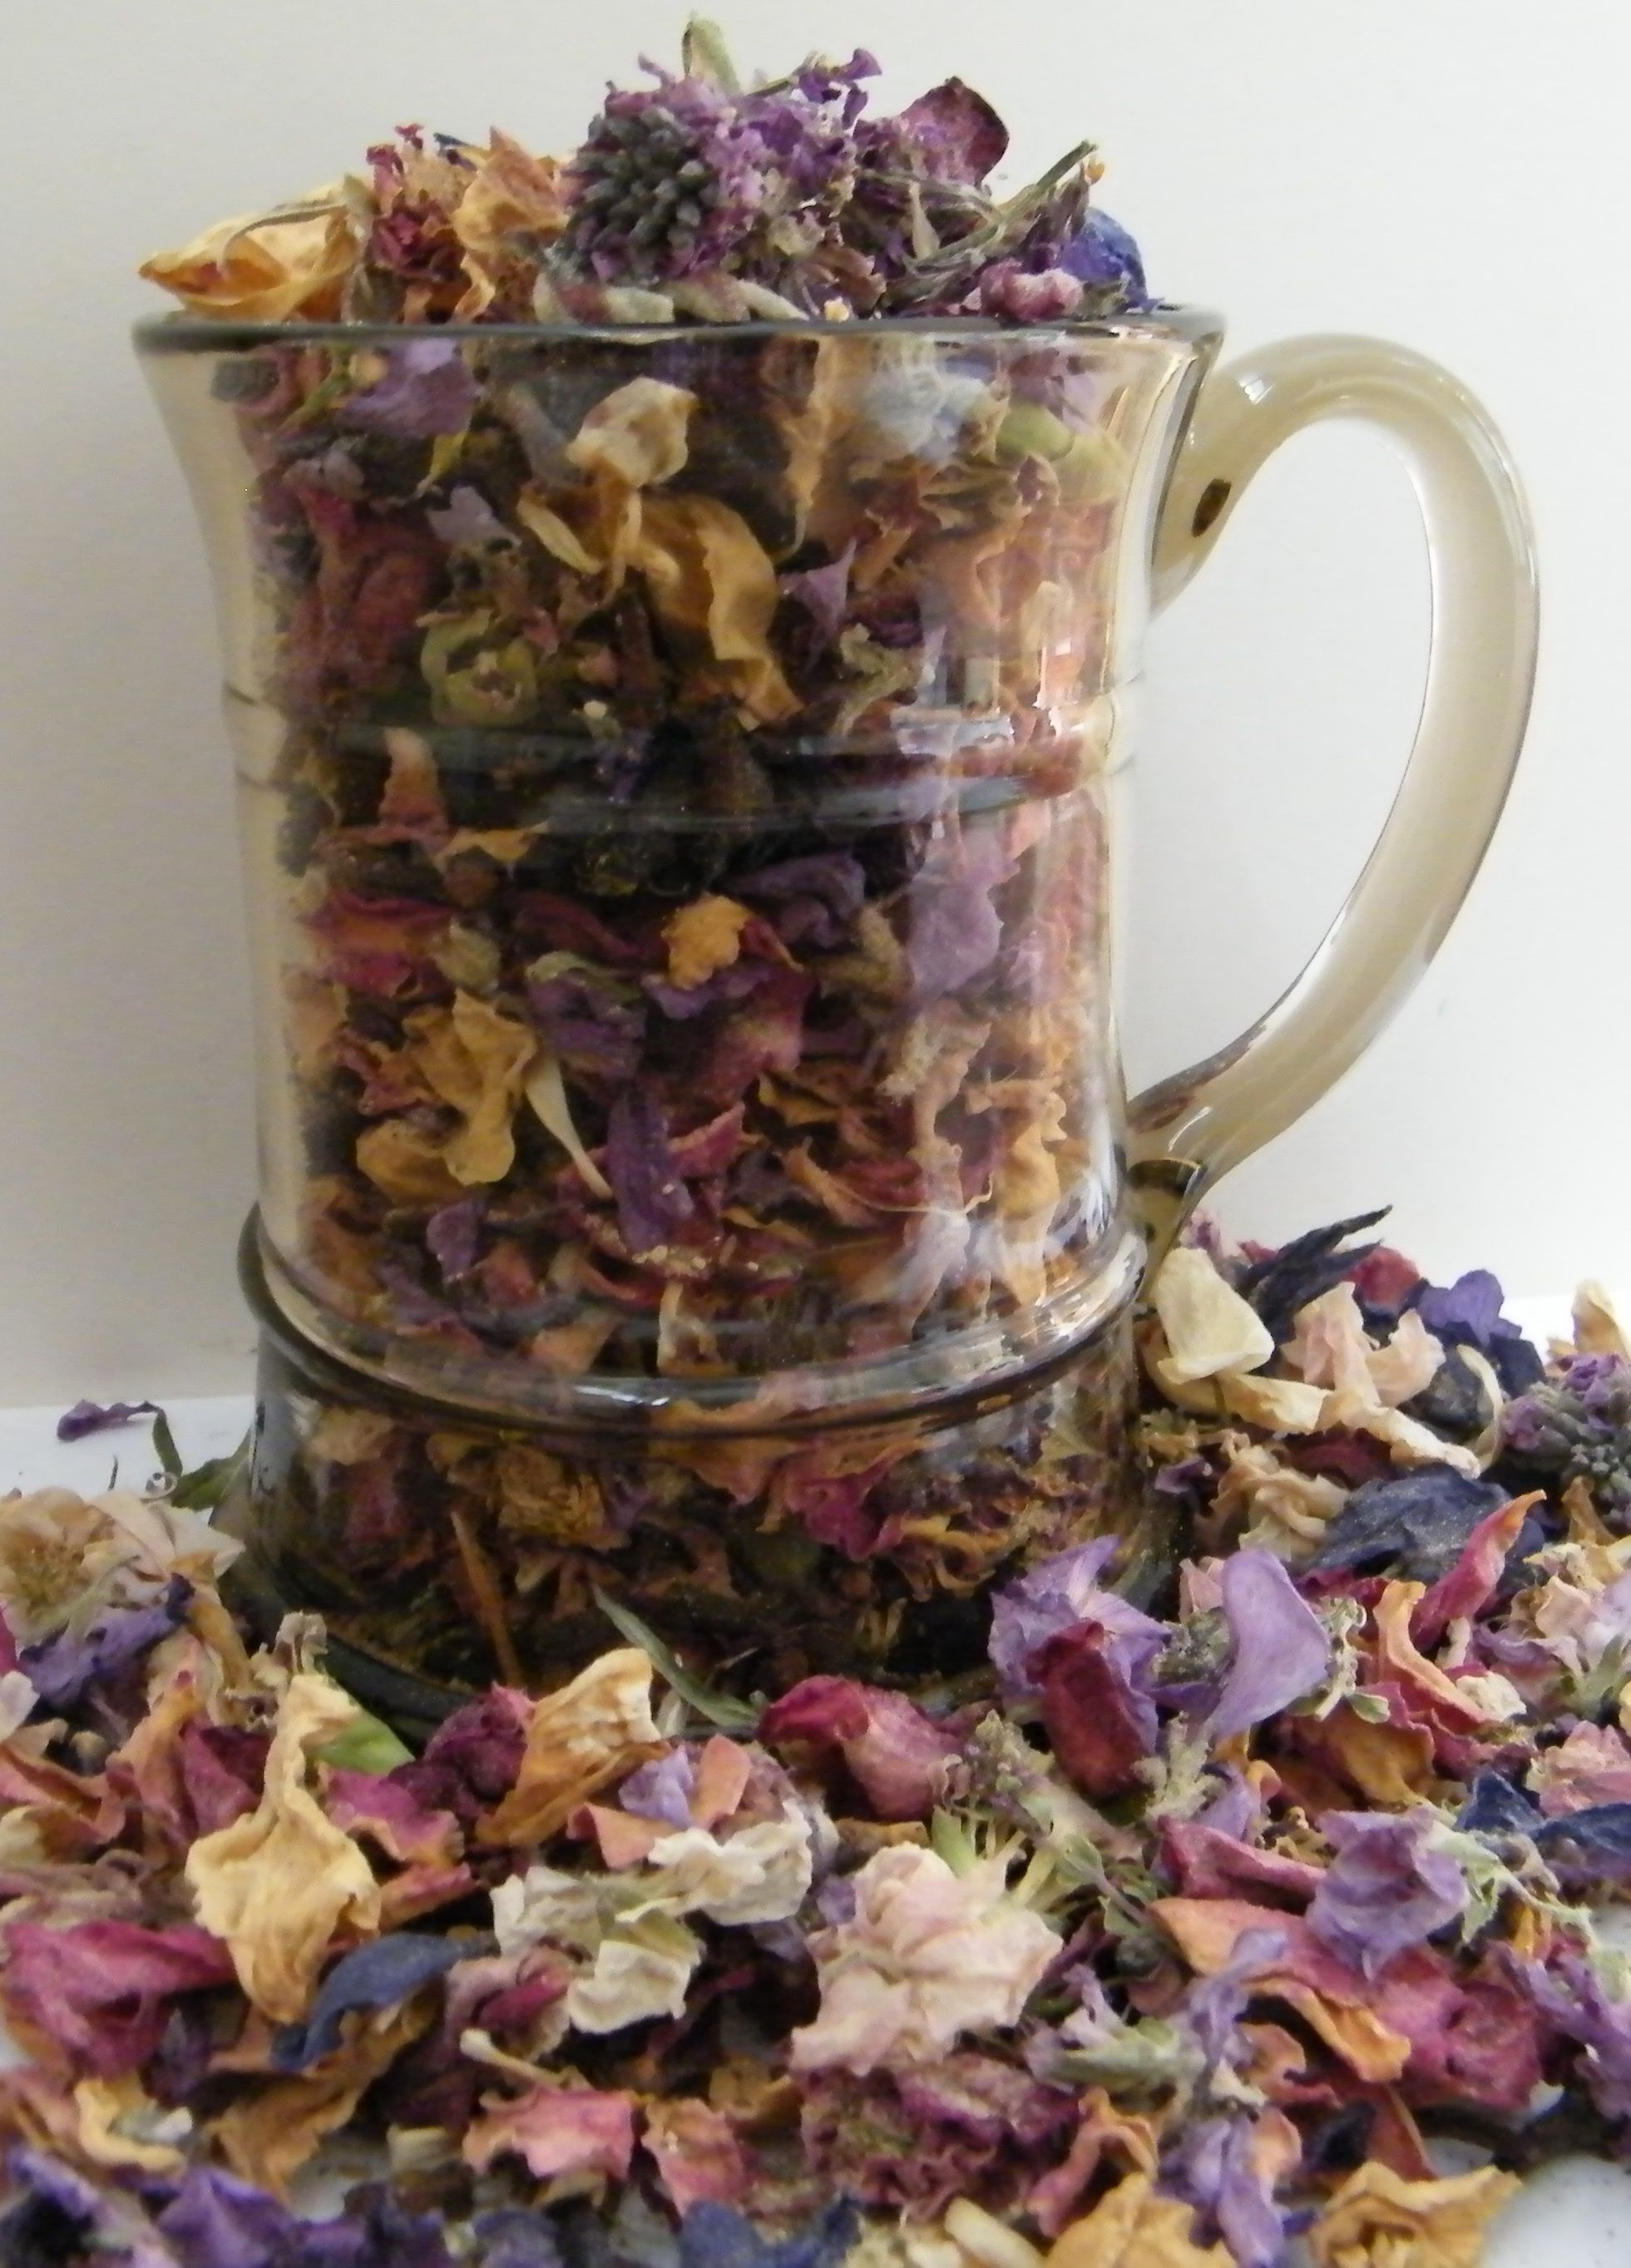 17 Best images about Potpourri making on Pinterest | Gardens ...